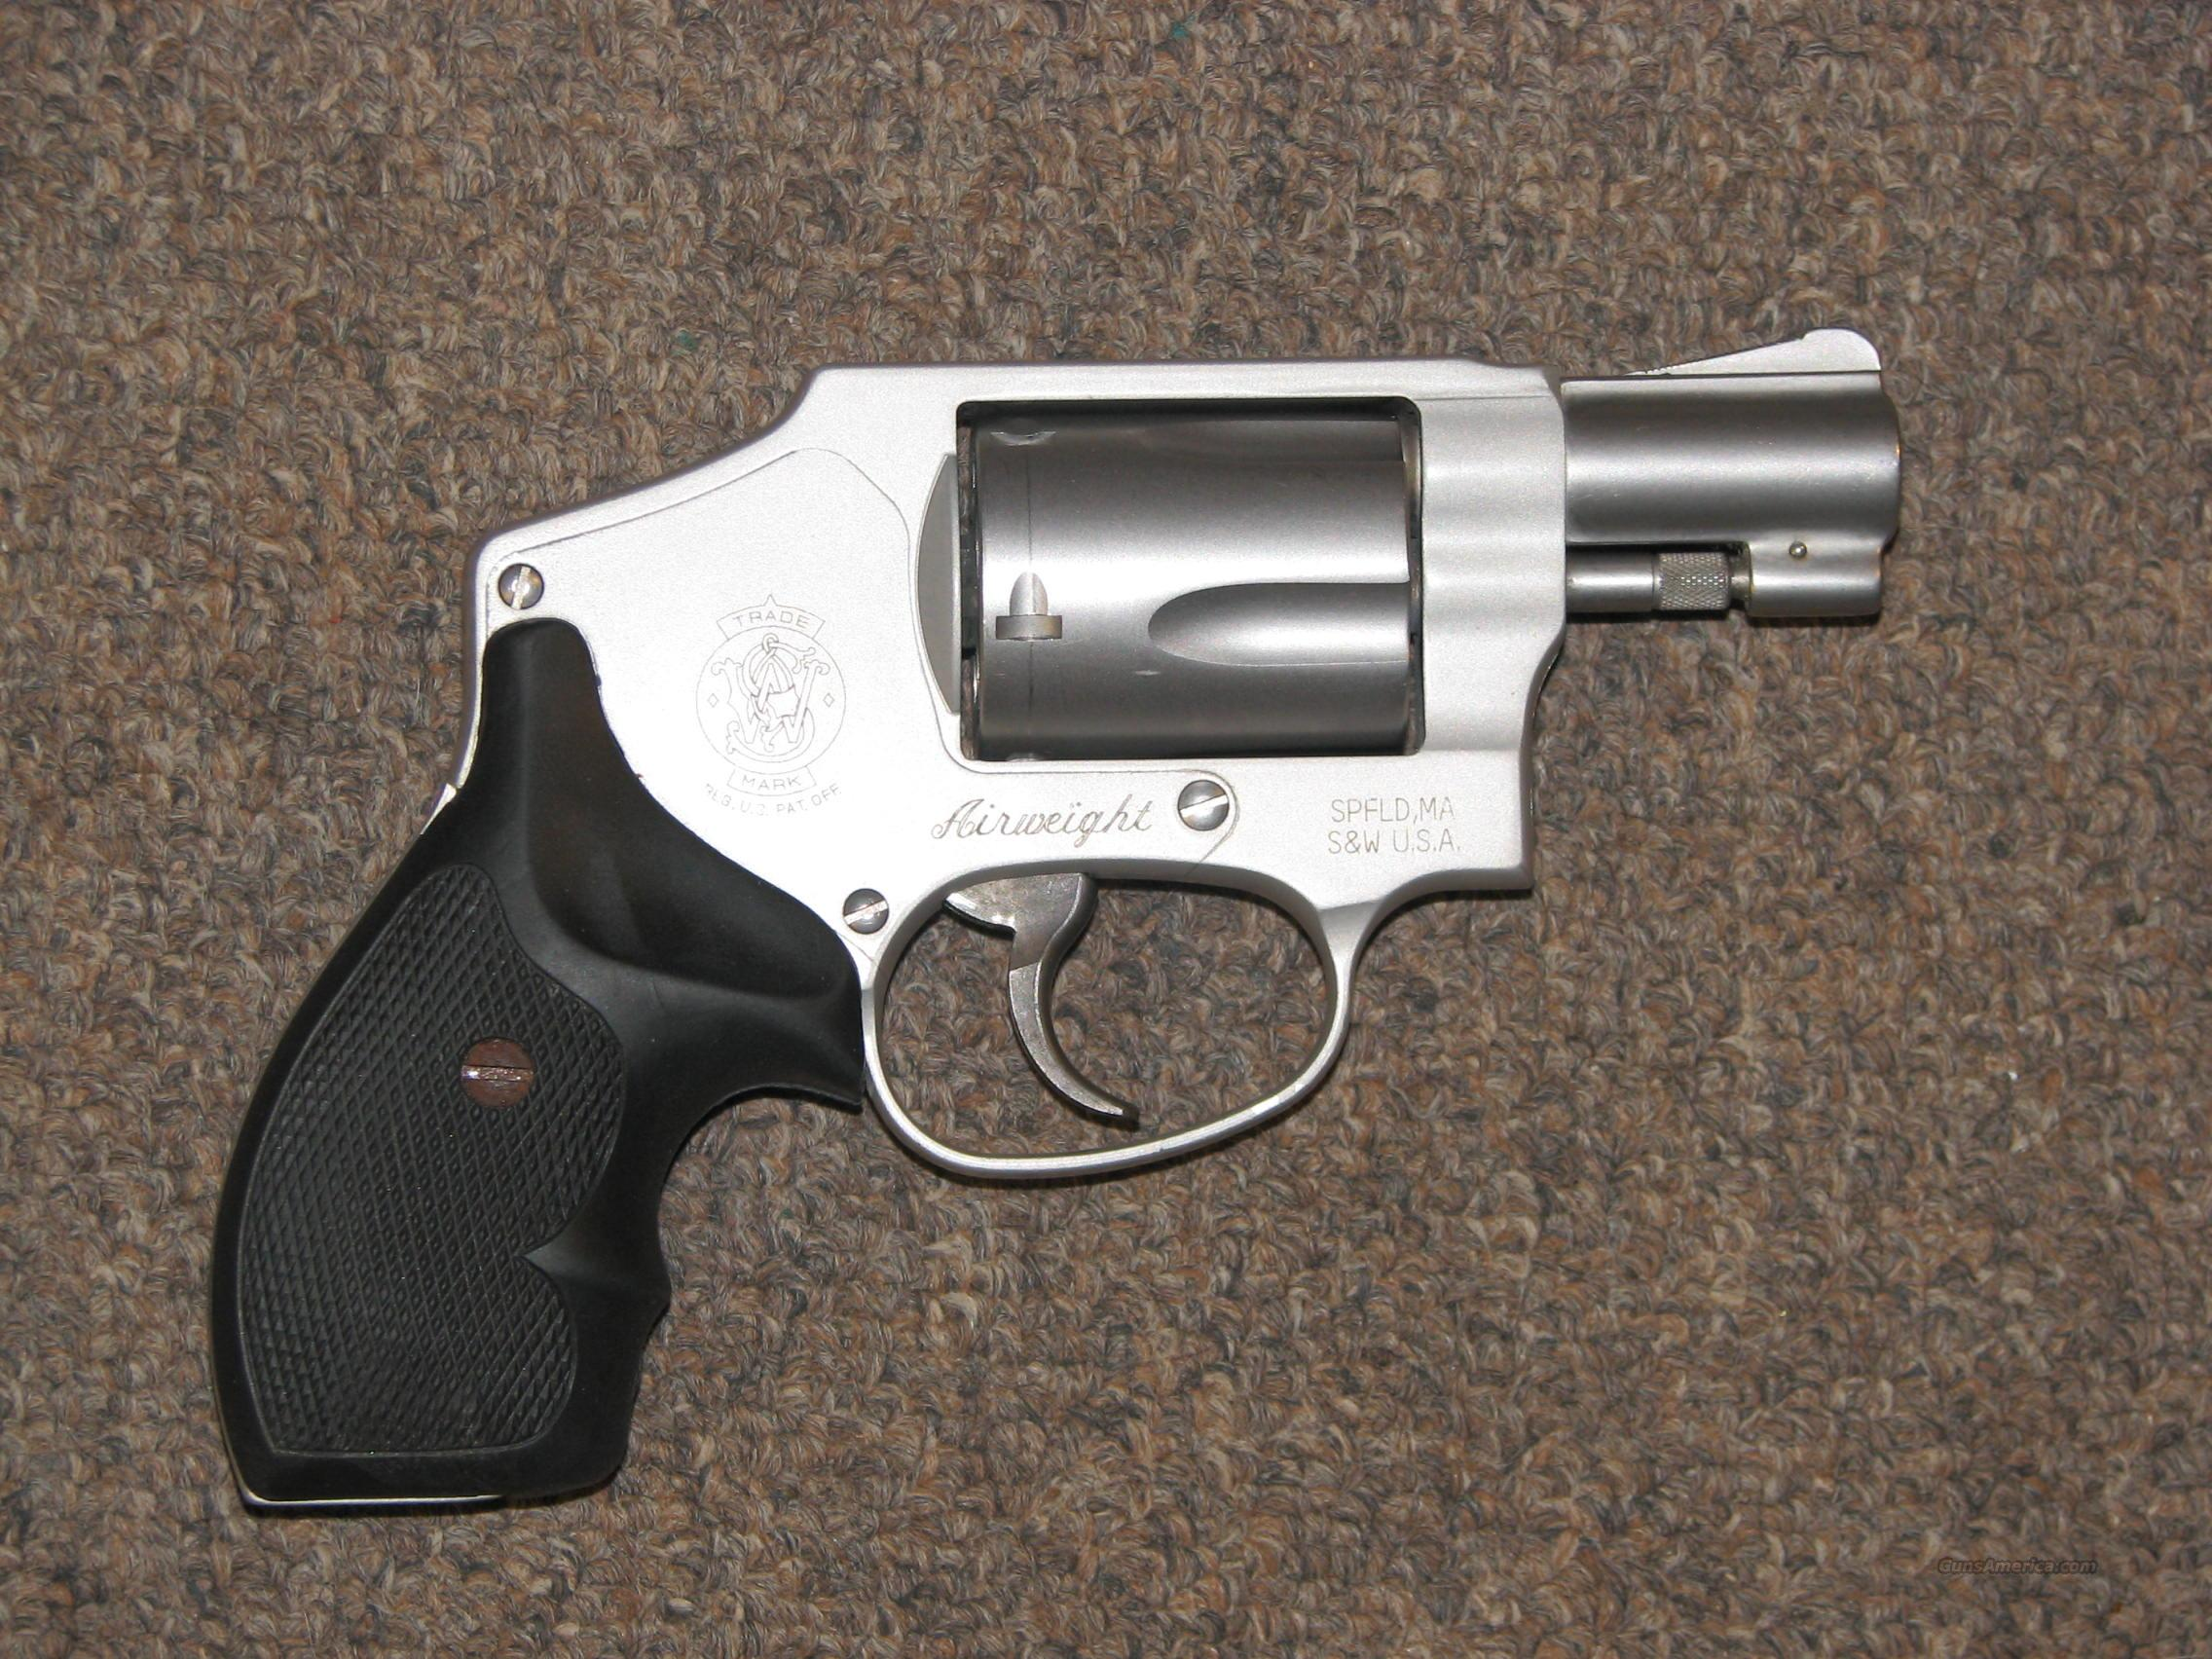 SMITH & WESSON 642 .38 SPECIAL  Guns > Pistols > Smith & Wesson Revolvers > Pocket Pistols